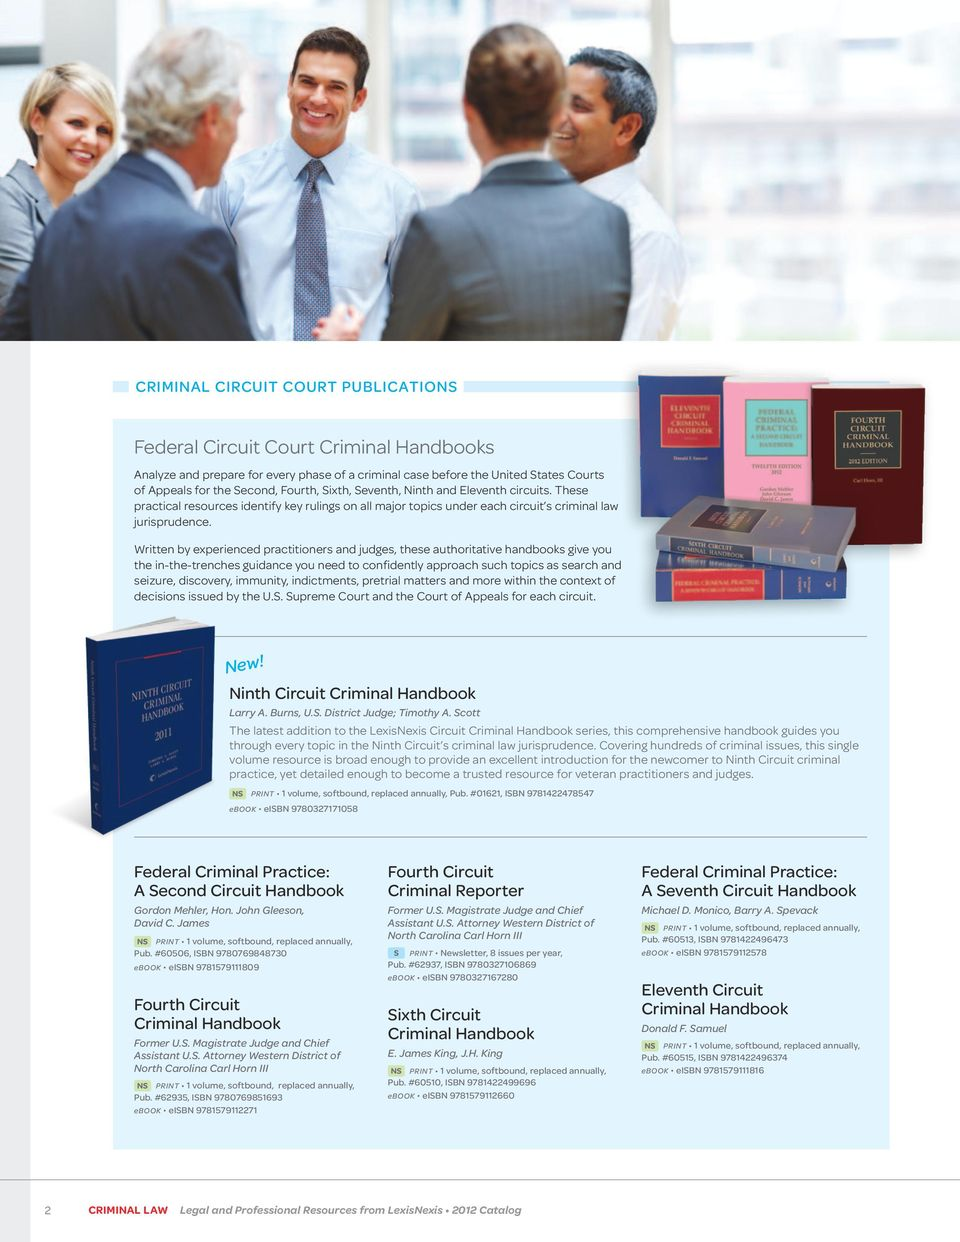 Written by experienced practitioners and judges, these authoritative handbooks give you the in-the-trenches guidance you need to confidently approach such topics as search and seizure, discovery,